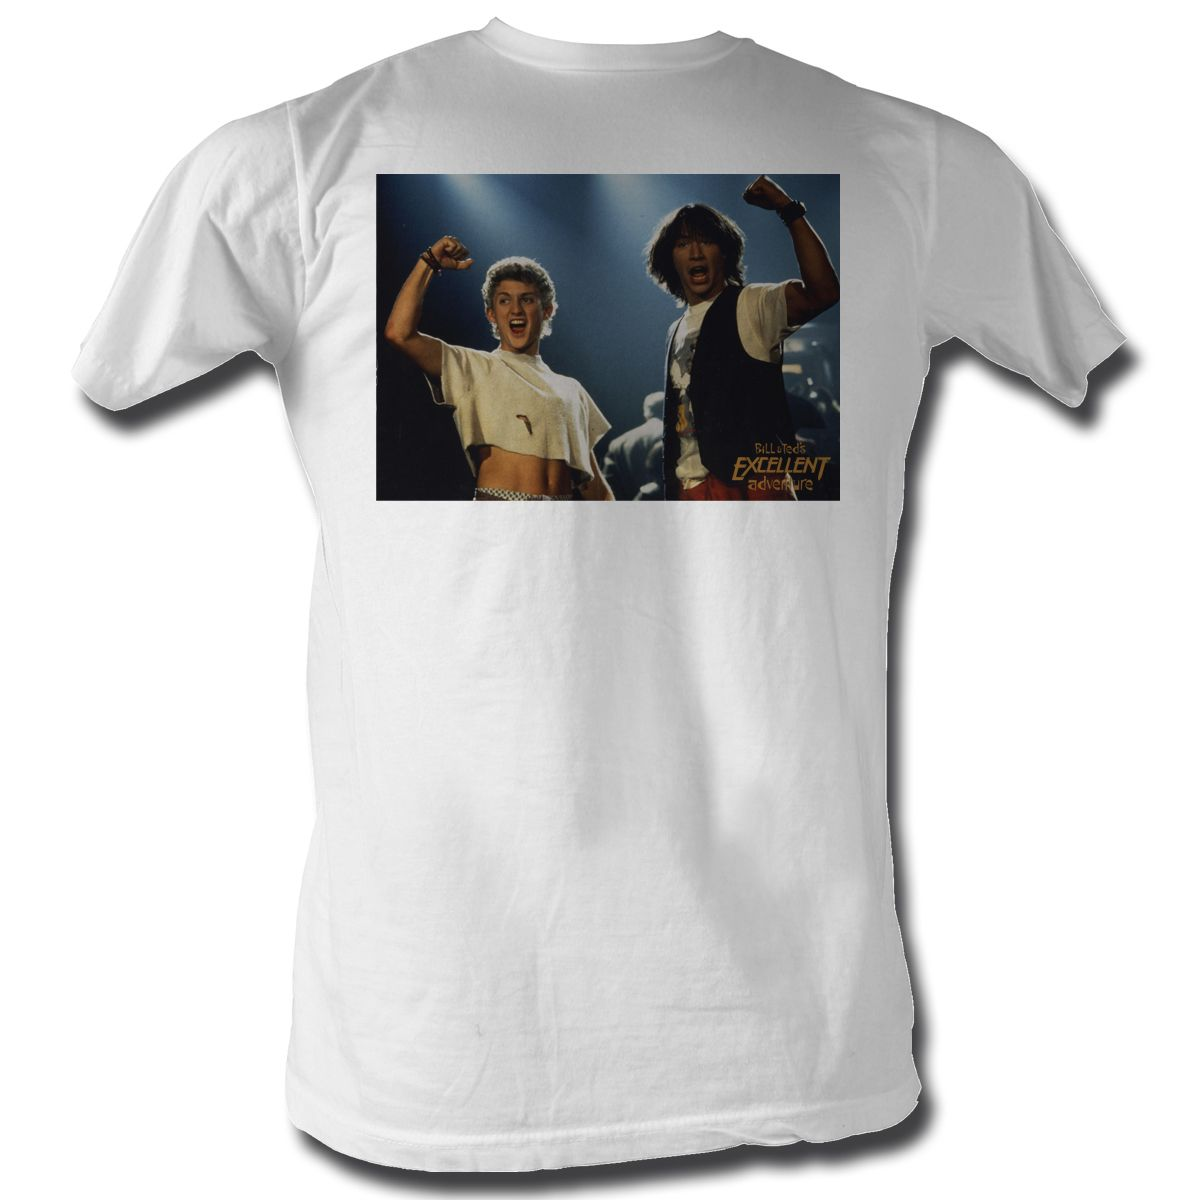 Bill And Ted Shirt Picture White Tee T-Shirt - Bill And Ted Shirts